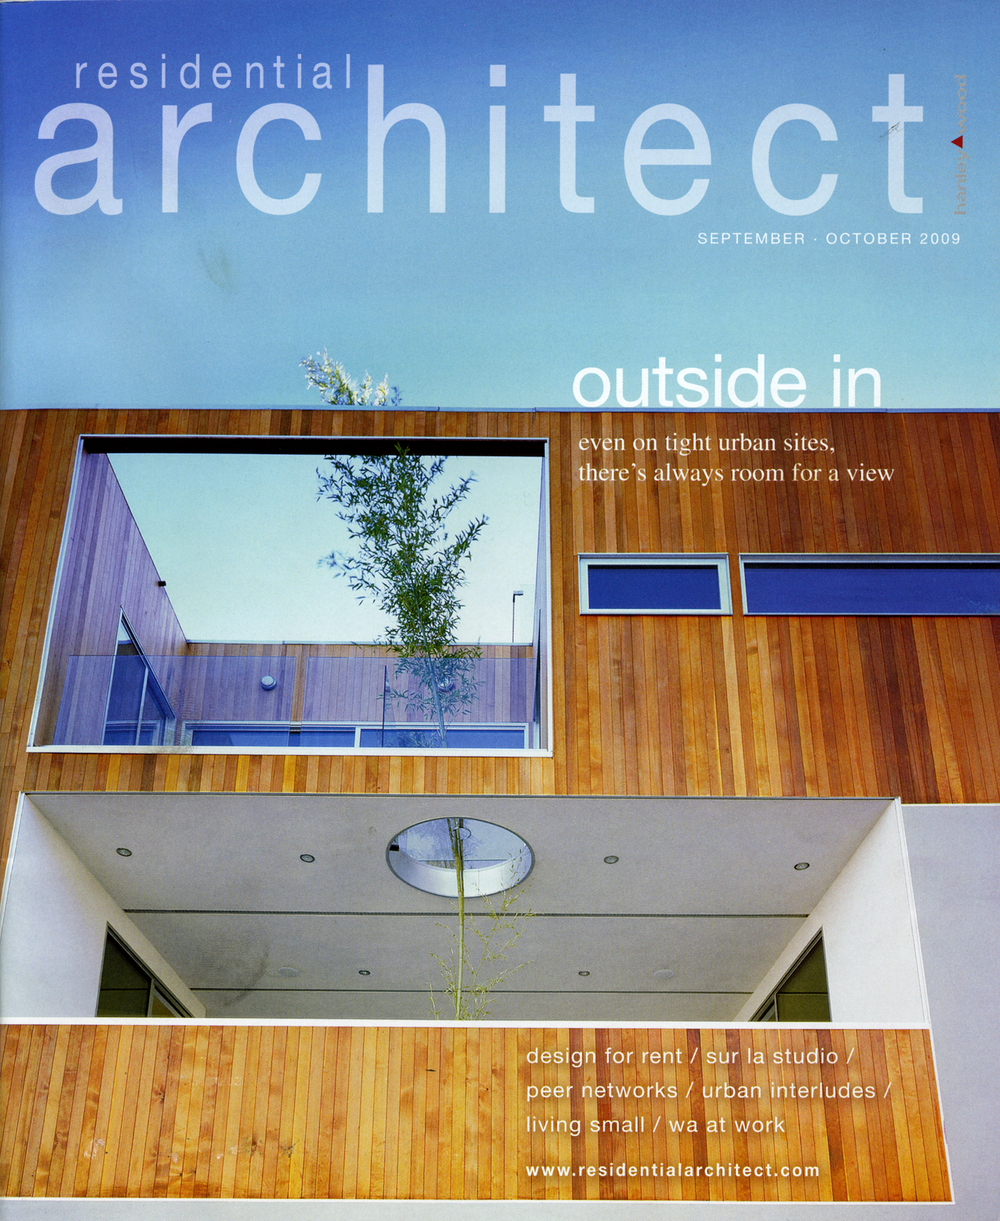 Residential architect magazine robitaille curtis for Free architecture magazines